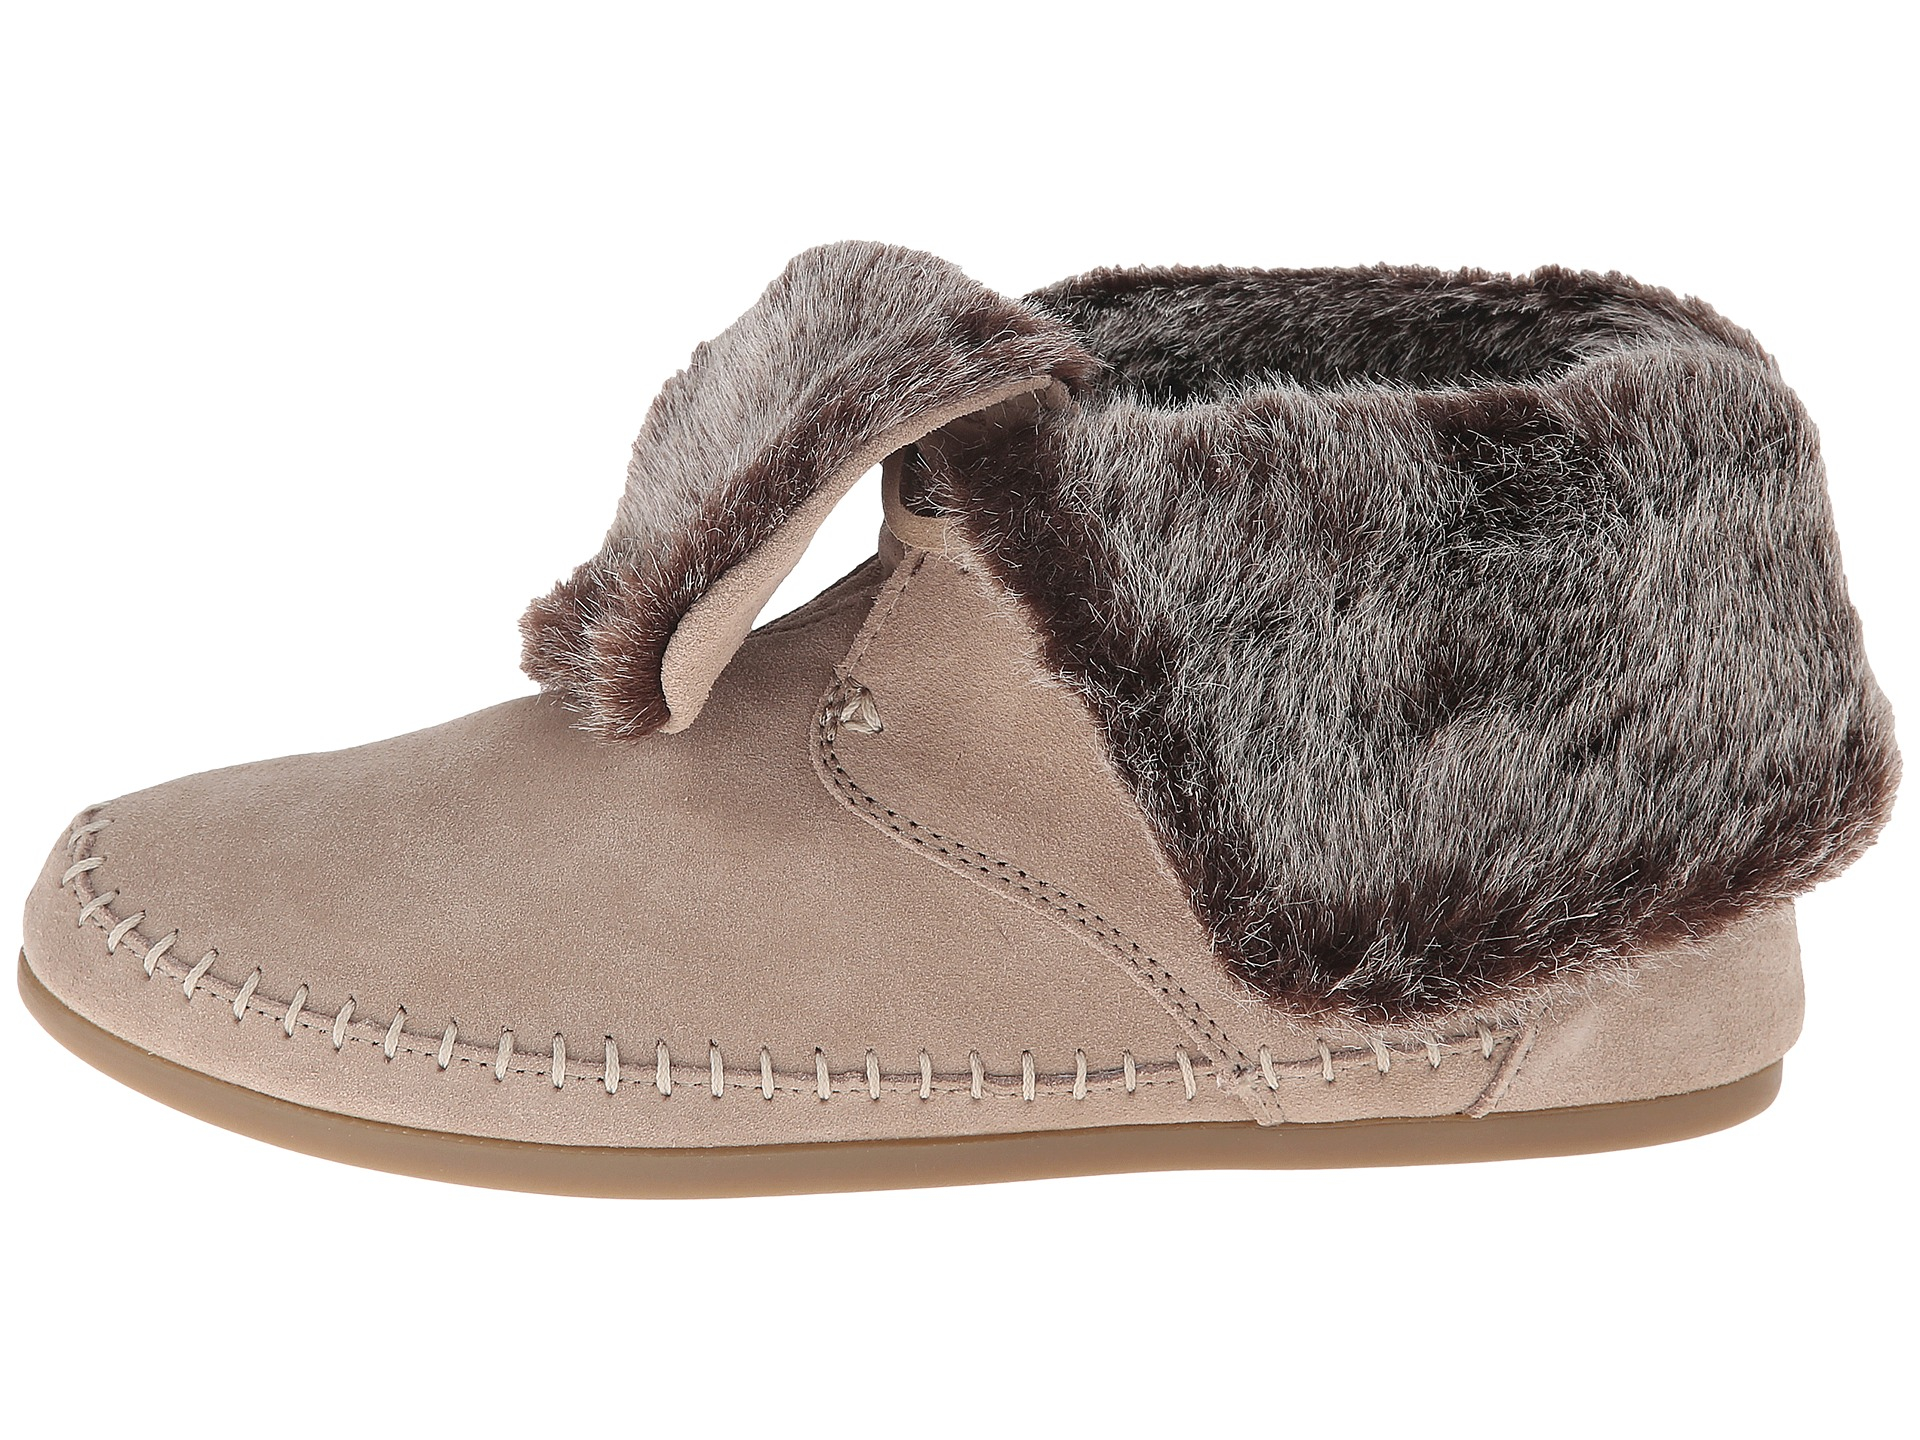 Toms Zahara Faux Fur Suede Boots In Beige Oxford Tan